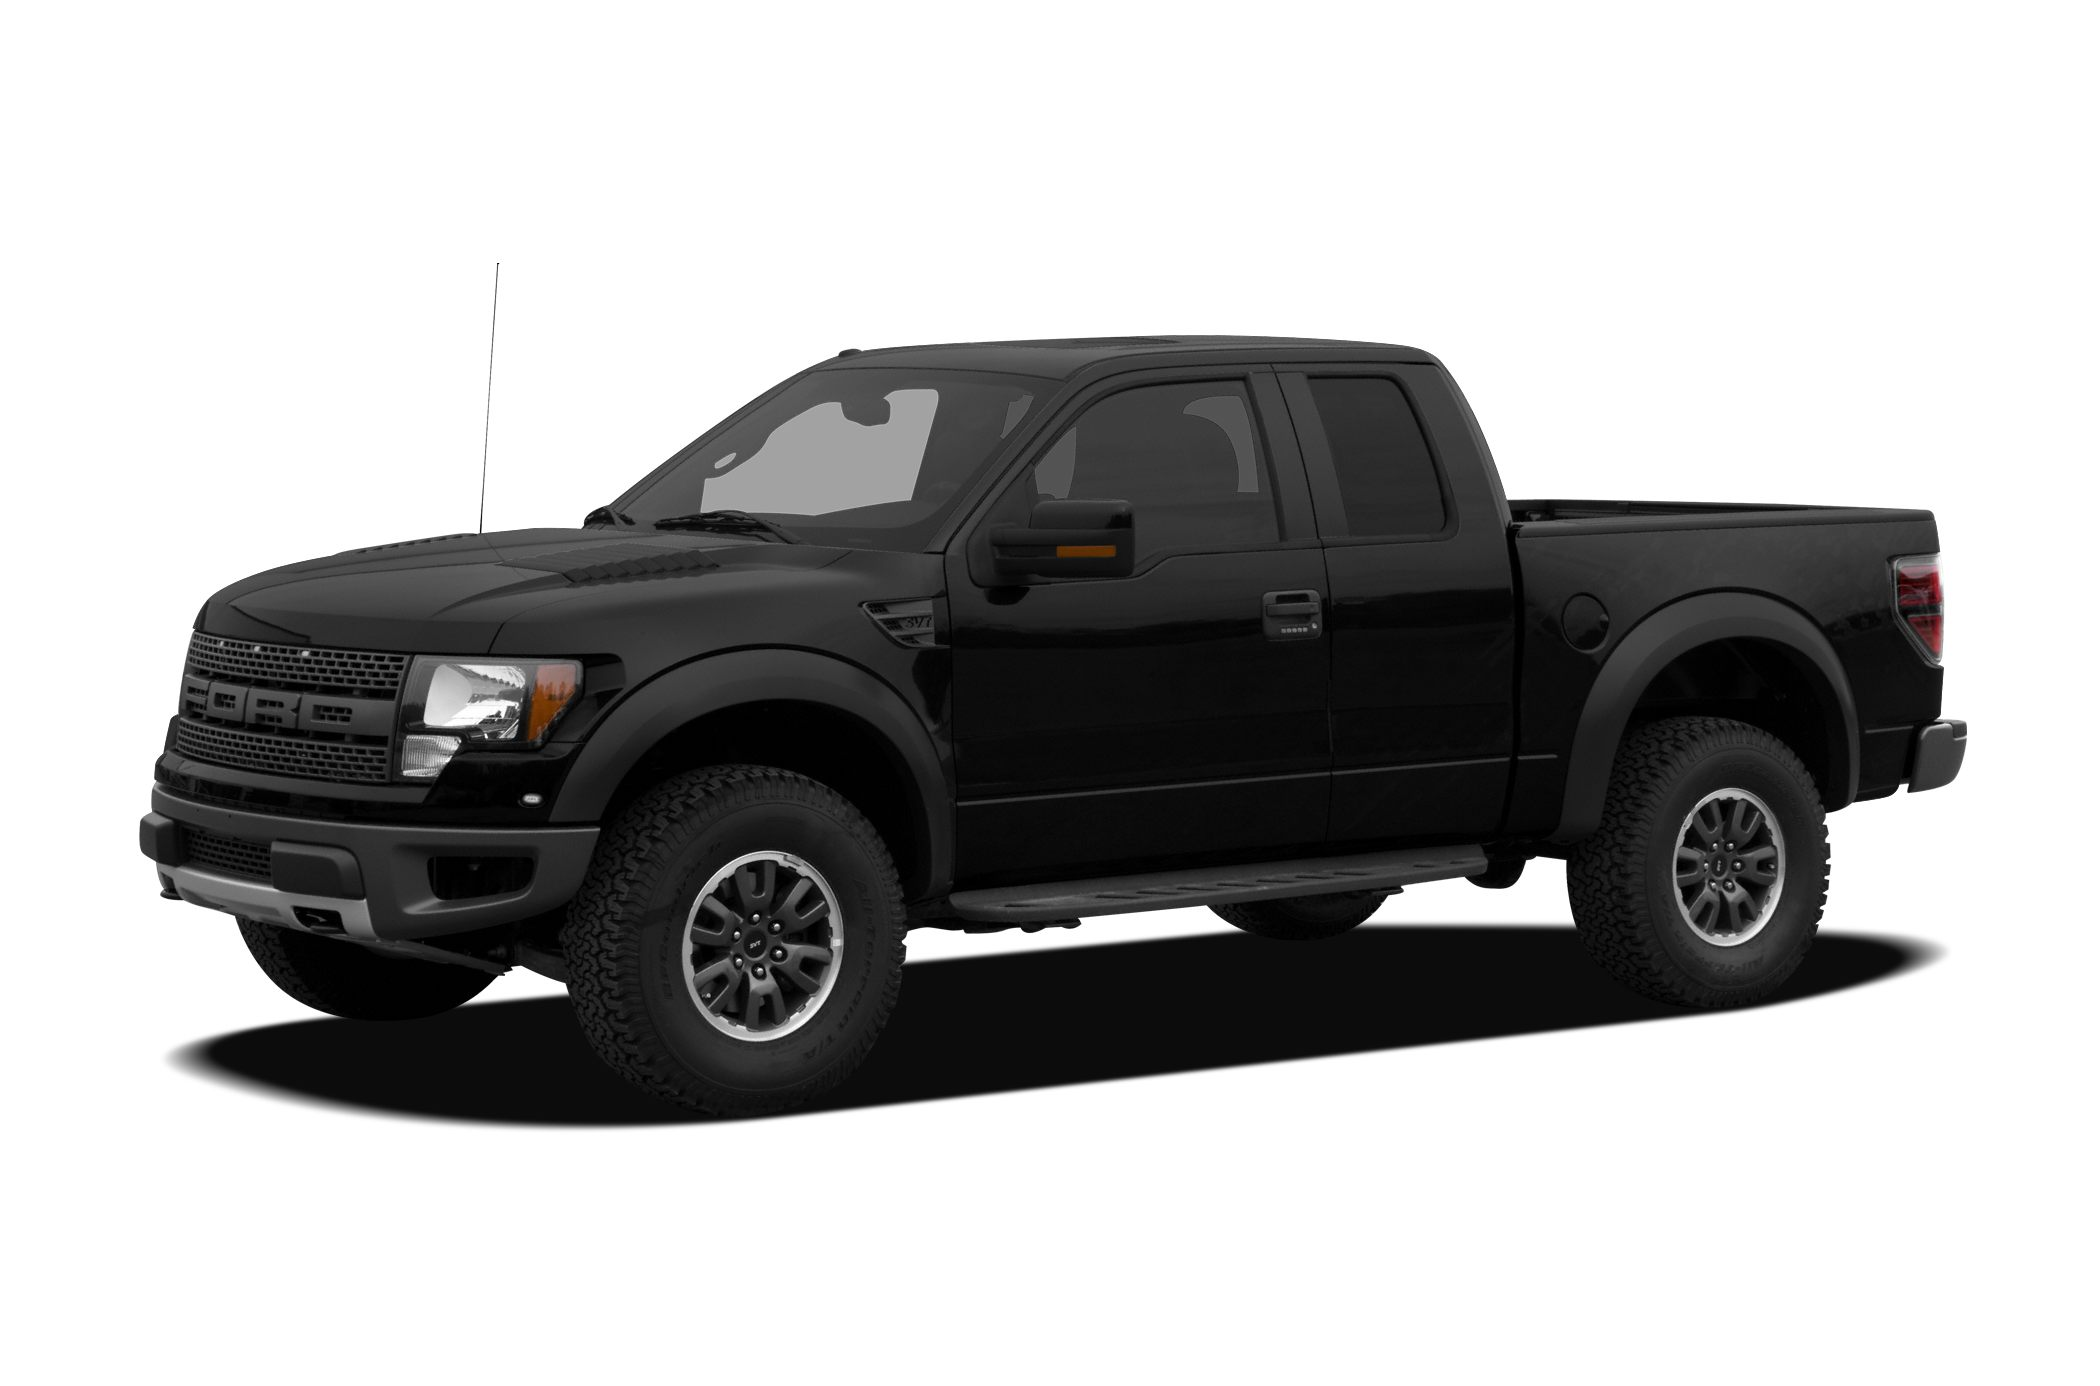 2010 Ford F150 SVT Raptor SuperCab Extended Cab Pickup for sale in Mccomb for $0 with 31,652 miles